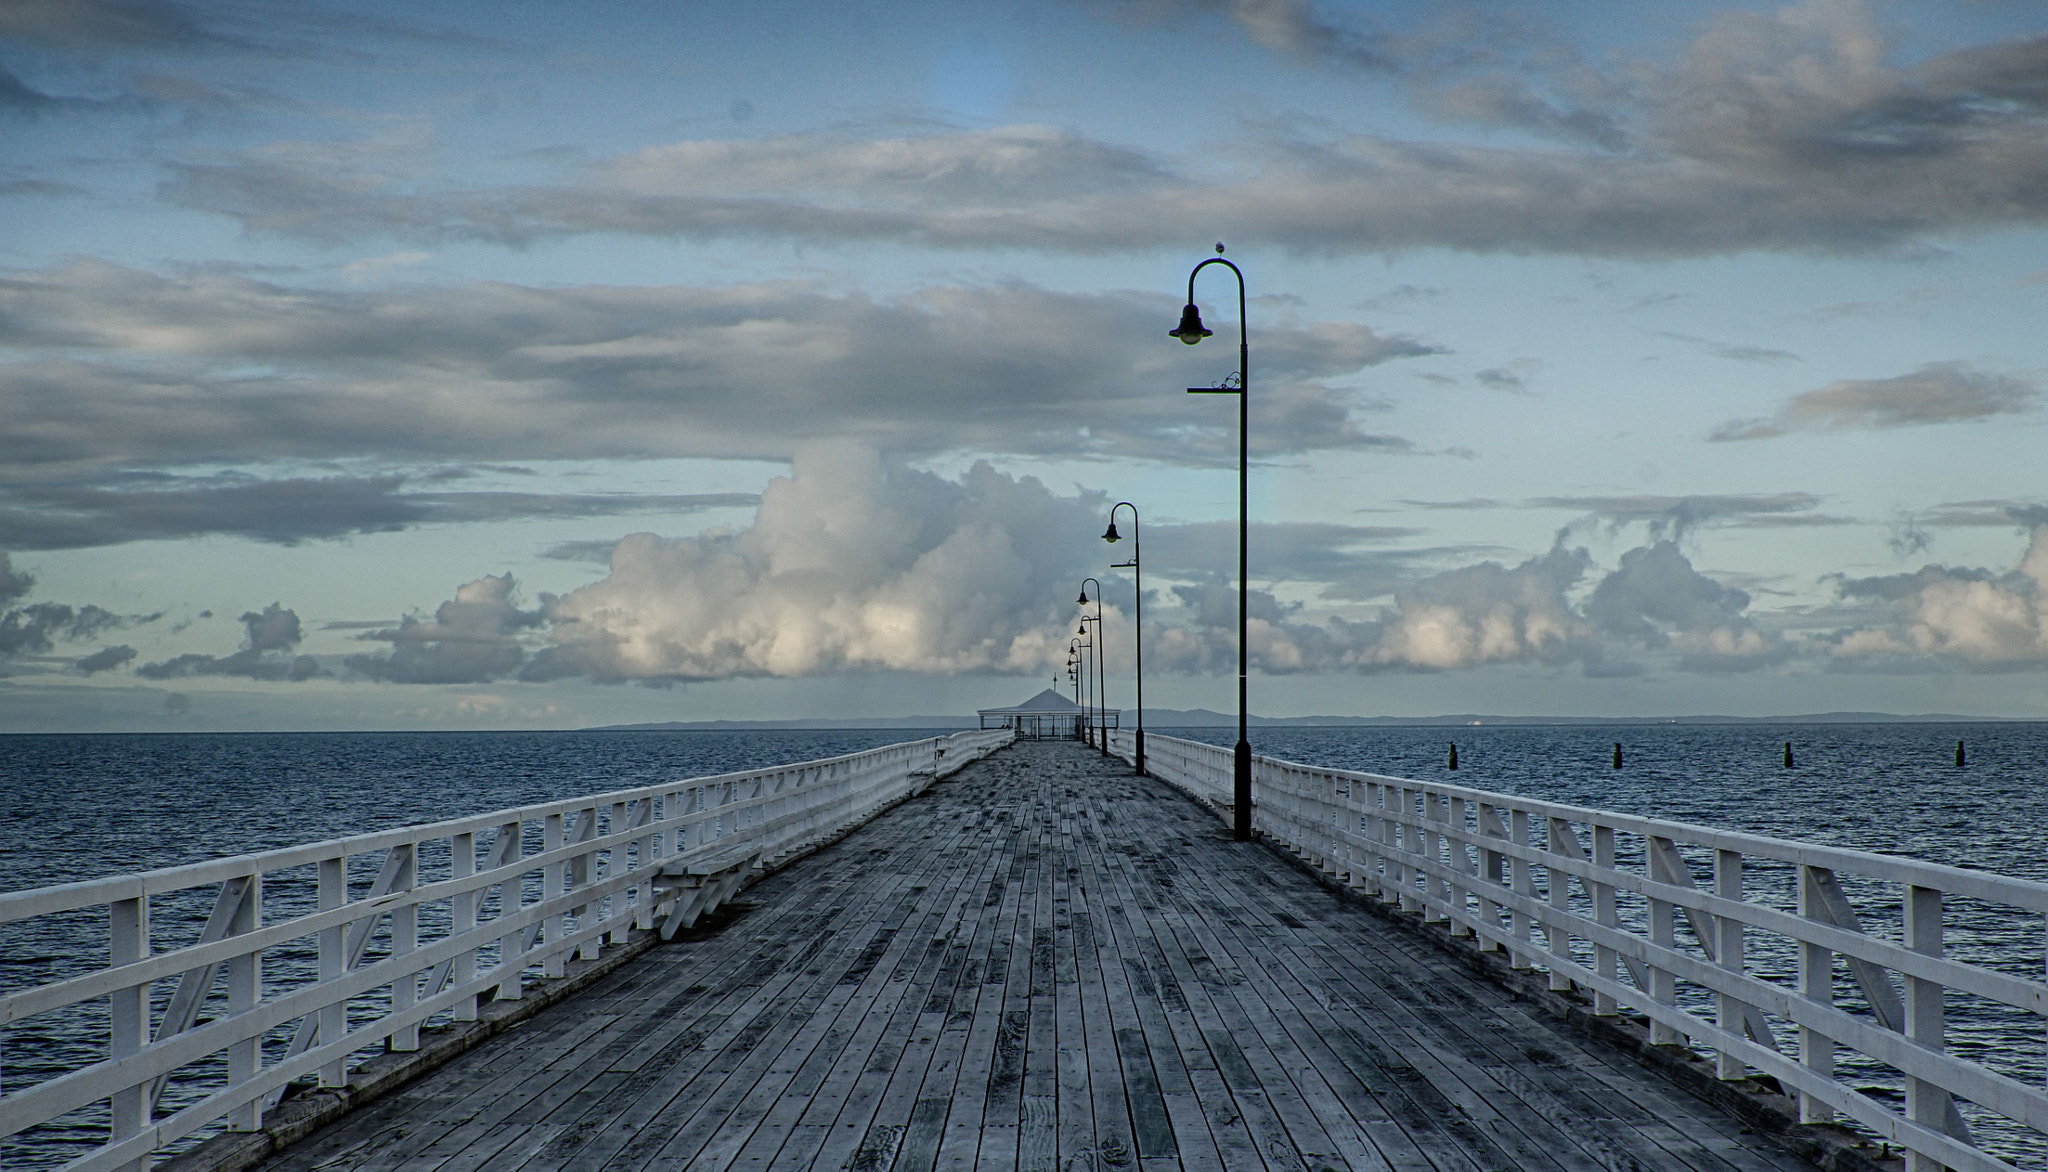 Photograph Shorncliffe Jetty by Trevor Gensch on 500px